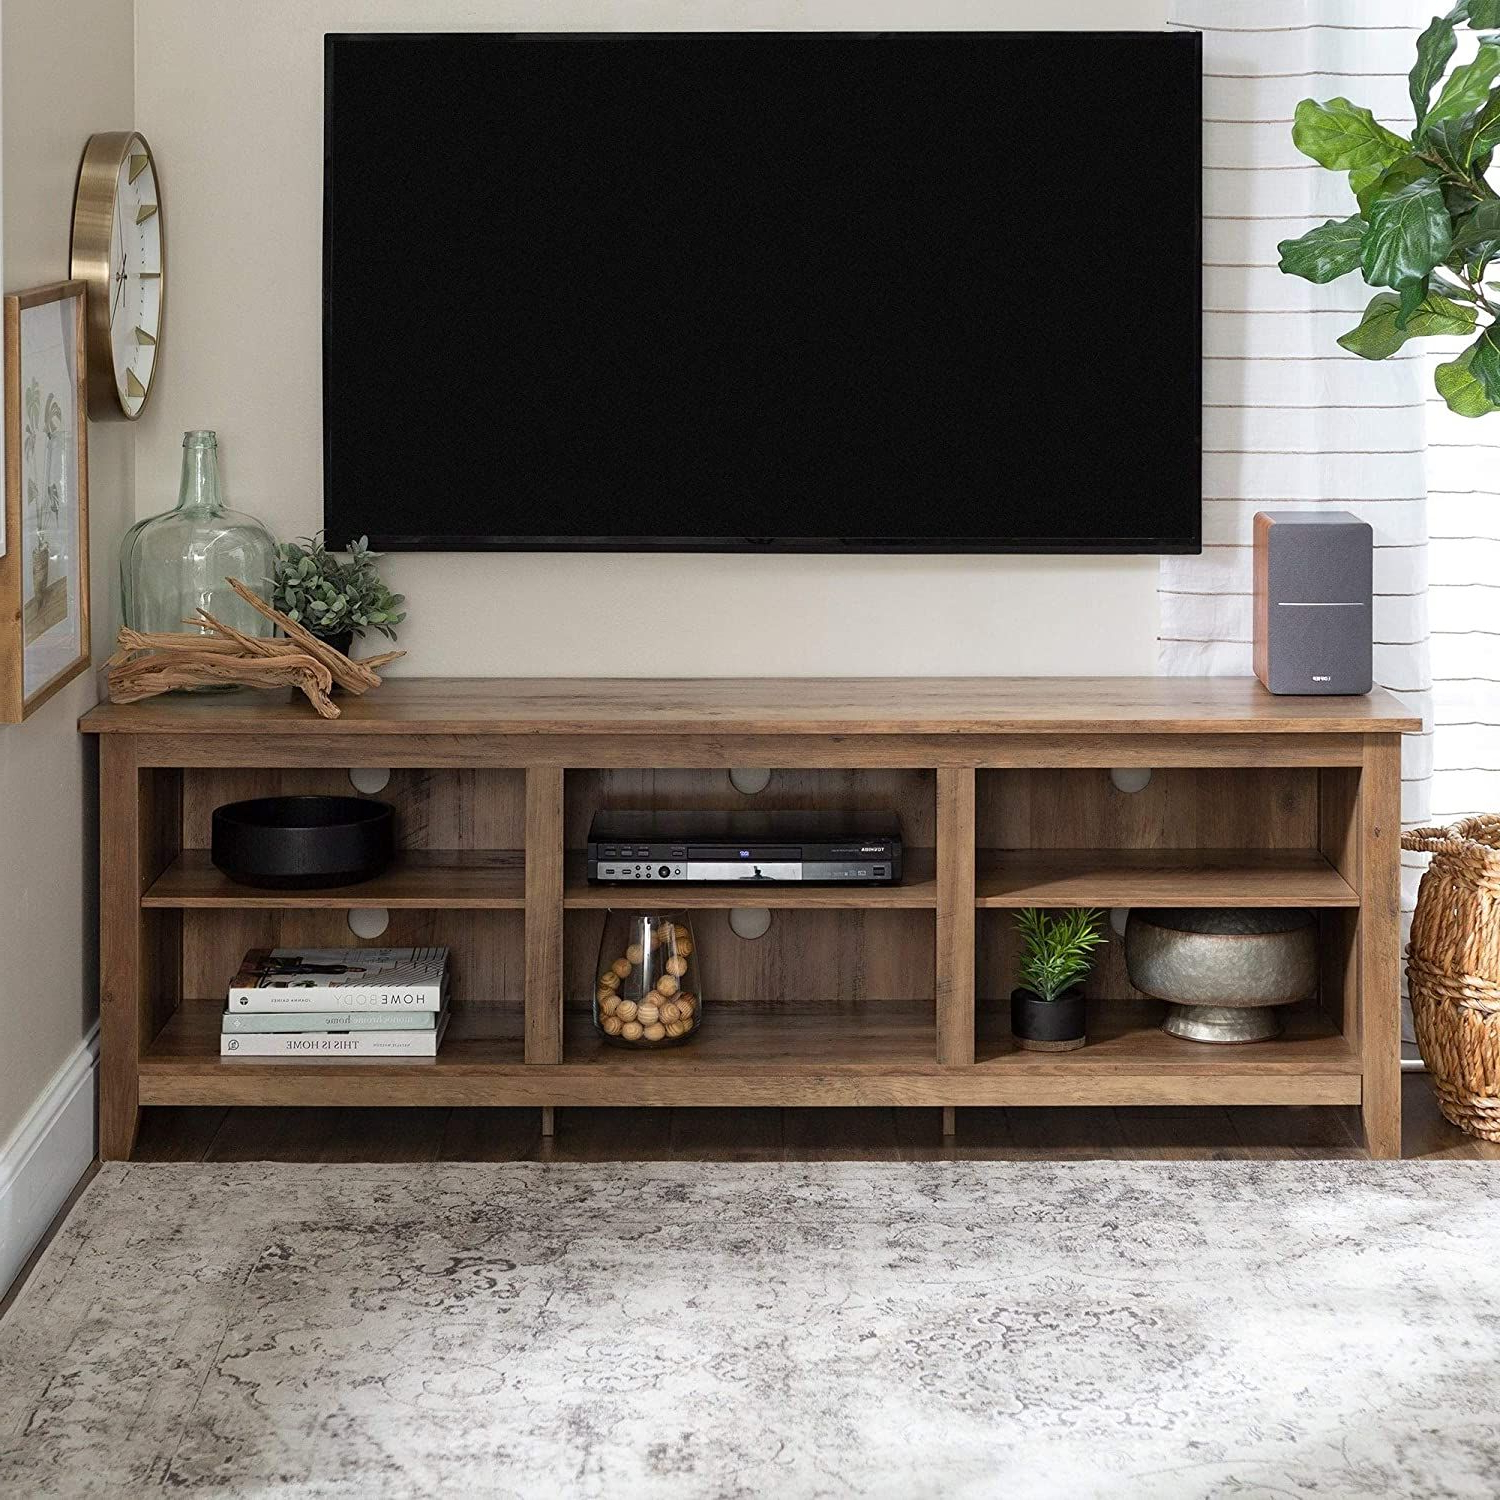 """Overstock 70"""" Tv Stand Console – 70 X 16 X 24h Rustic Oak In Rustic Grey Tv Stand Media Console Stands For Living Room Bedroom (View 3 of 20)"""